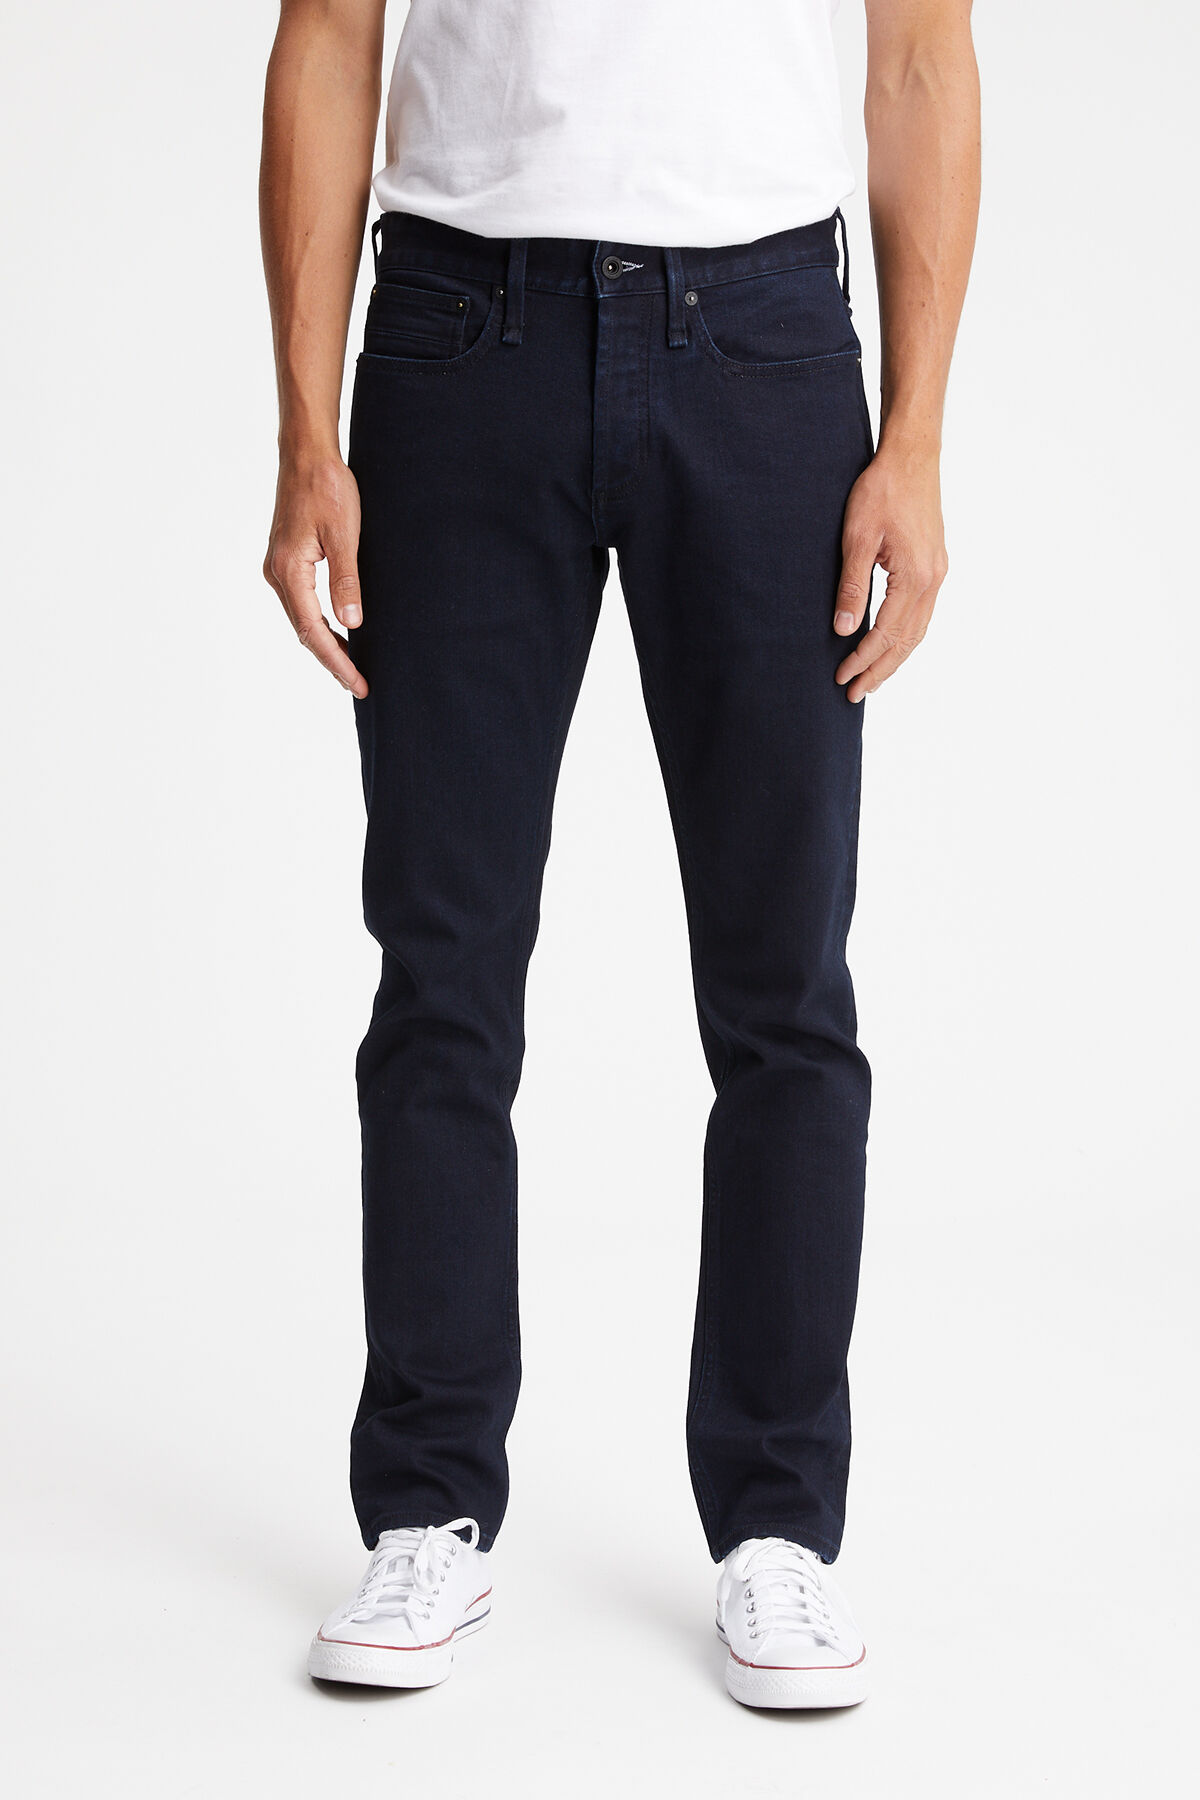 RAZOR Blue-Black Comfort Stretch Denim - Slim Fit